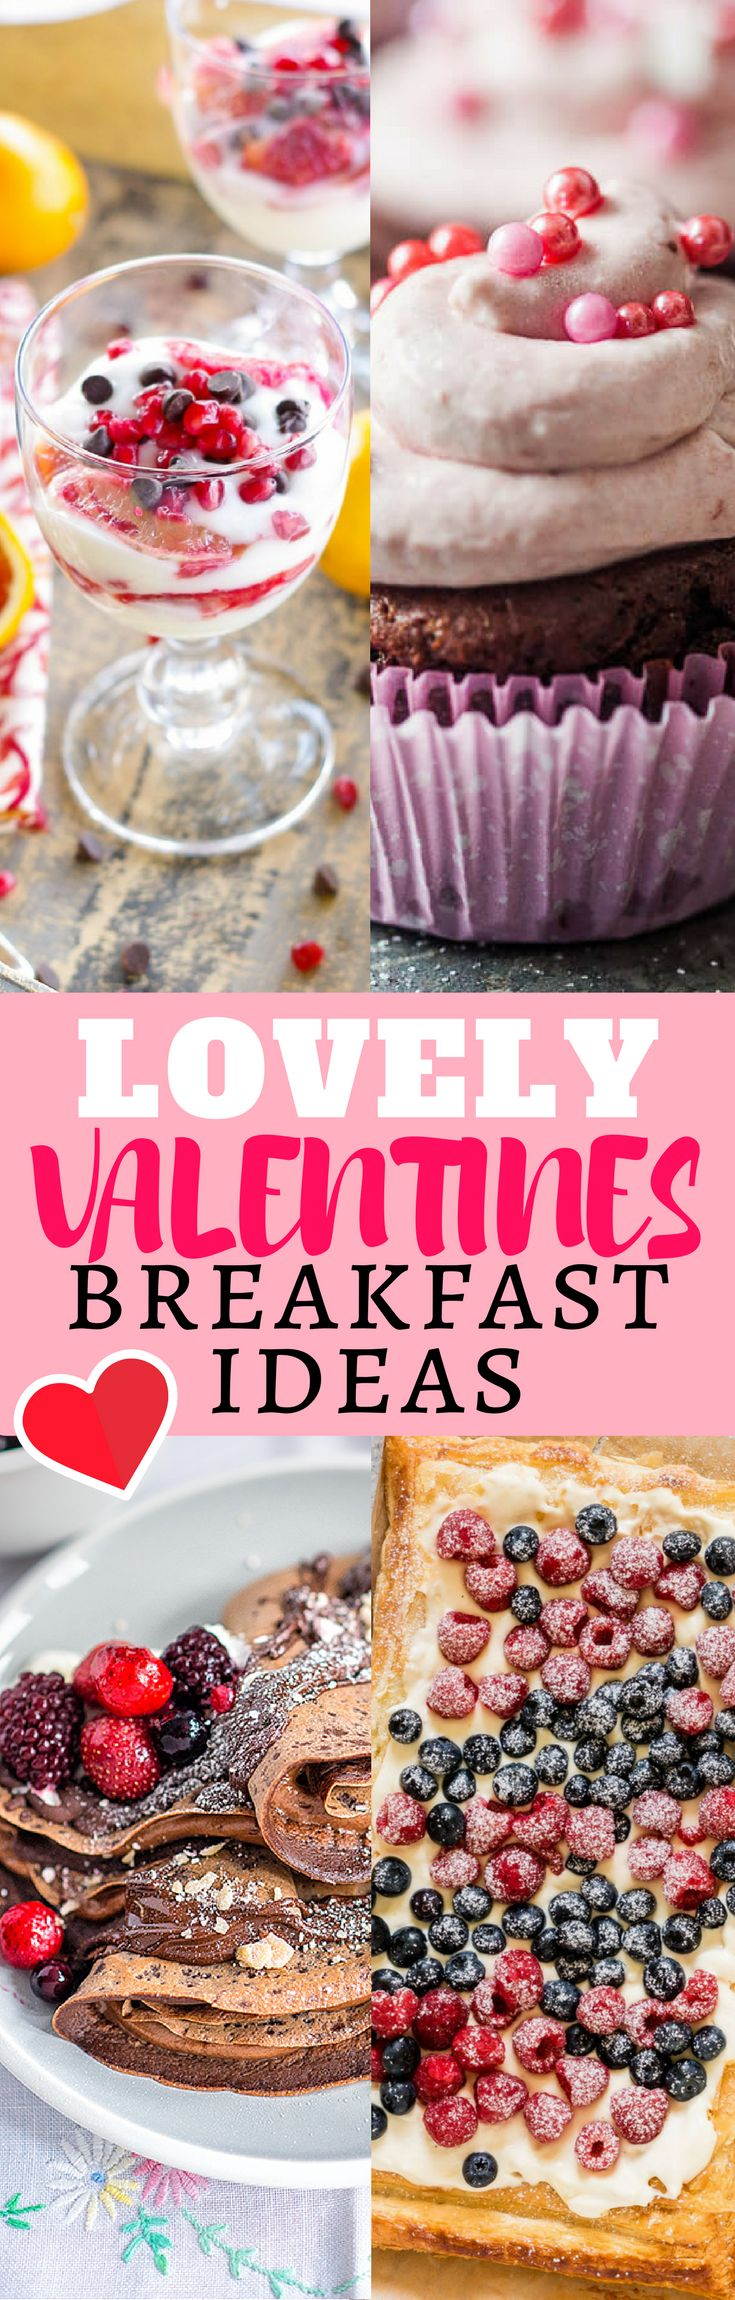 Pin Share Tweet Yum Stumble +1 Flip14th of February is a beautiful day that we all want to celebrate with our loved ones. What could be better then saying I love you with a beautiful […]